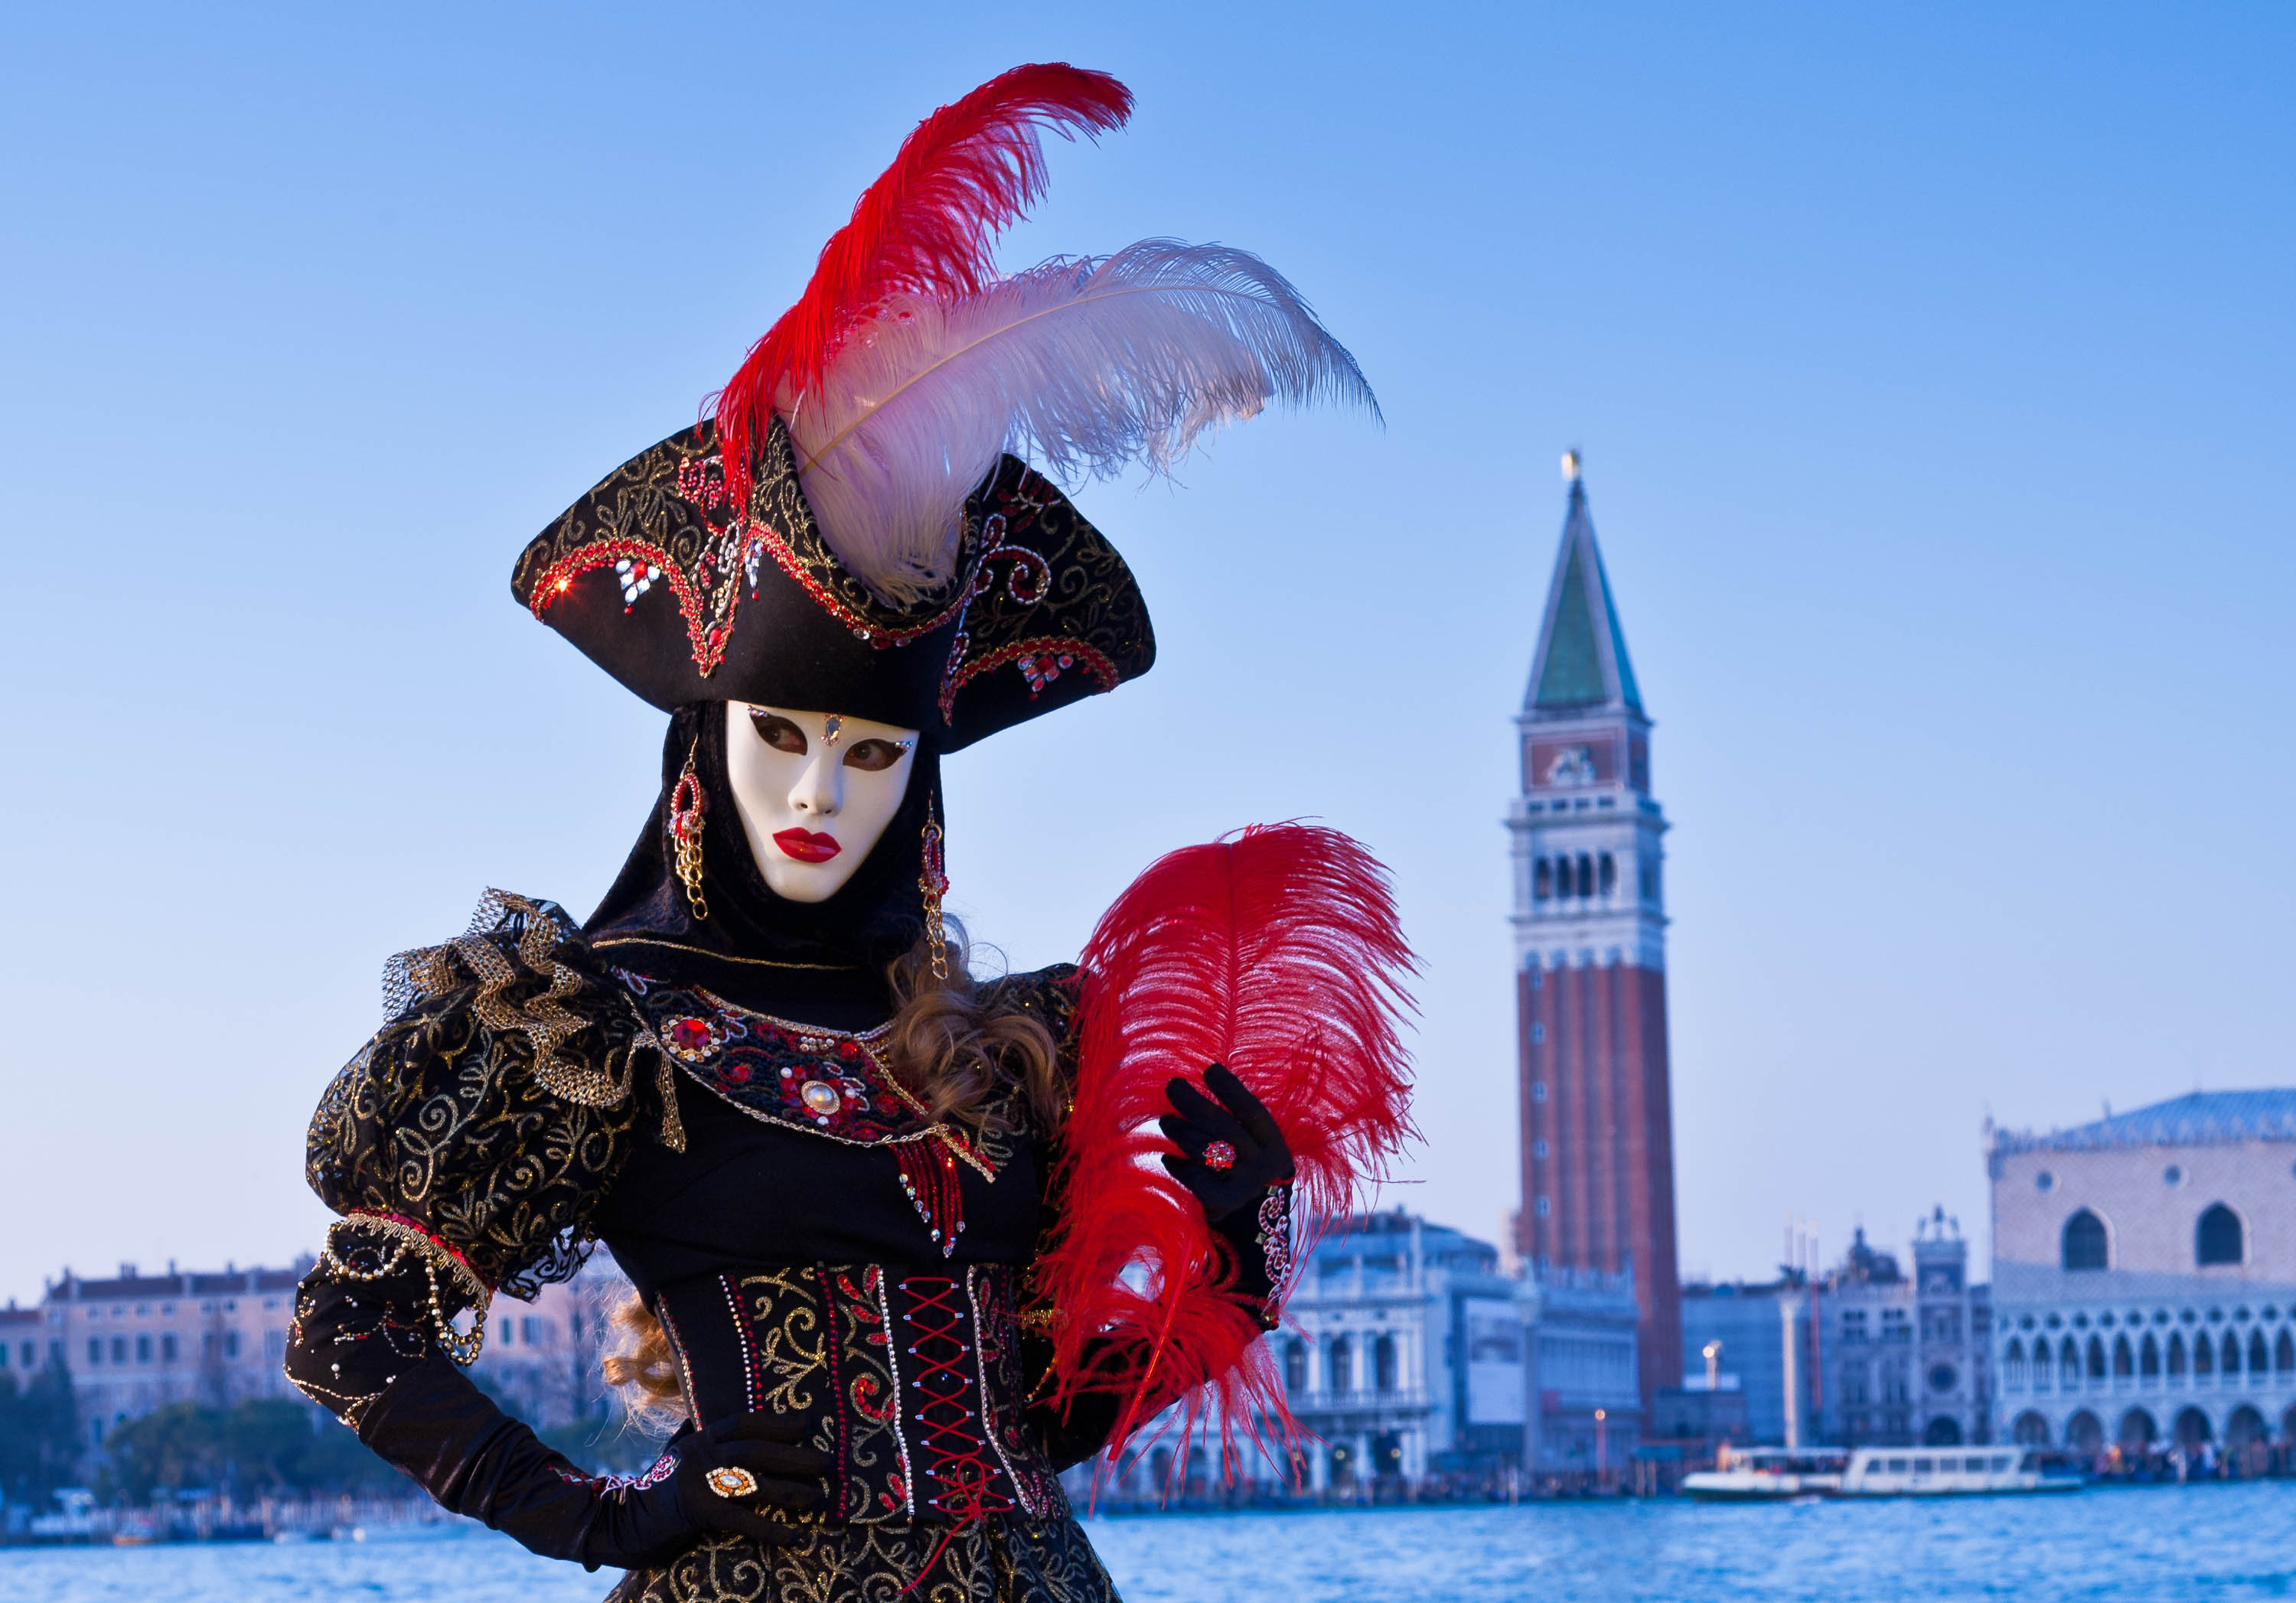 Maskierte Person beim Karneval in Venedig